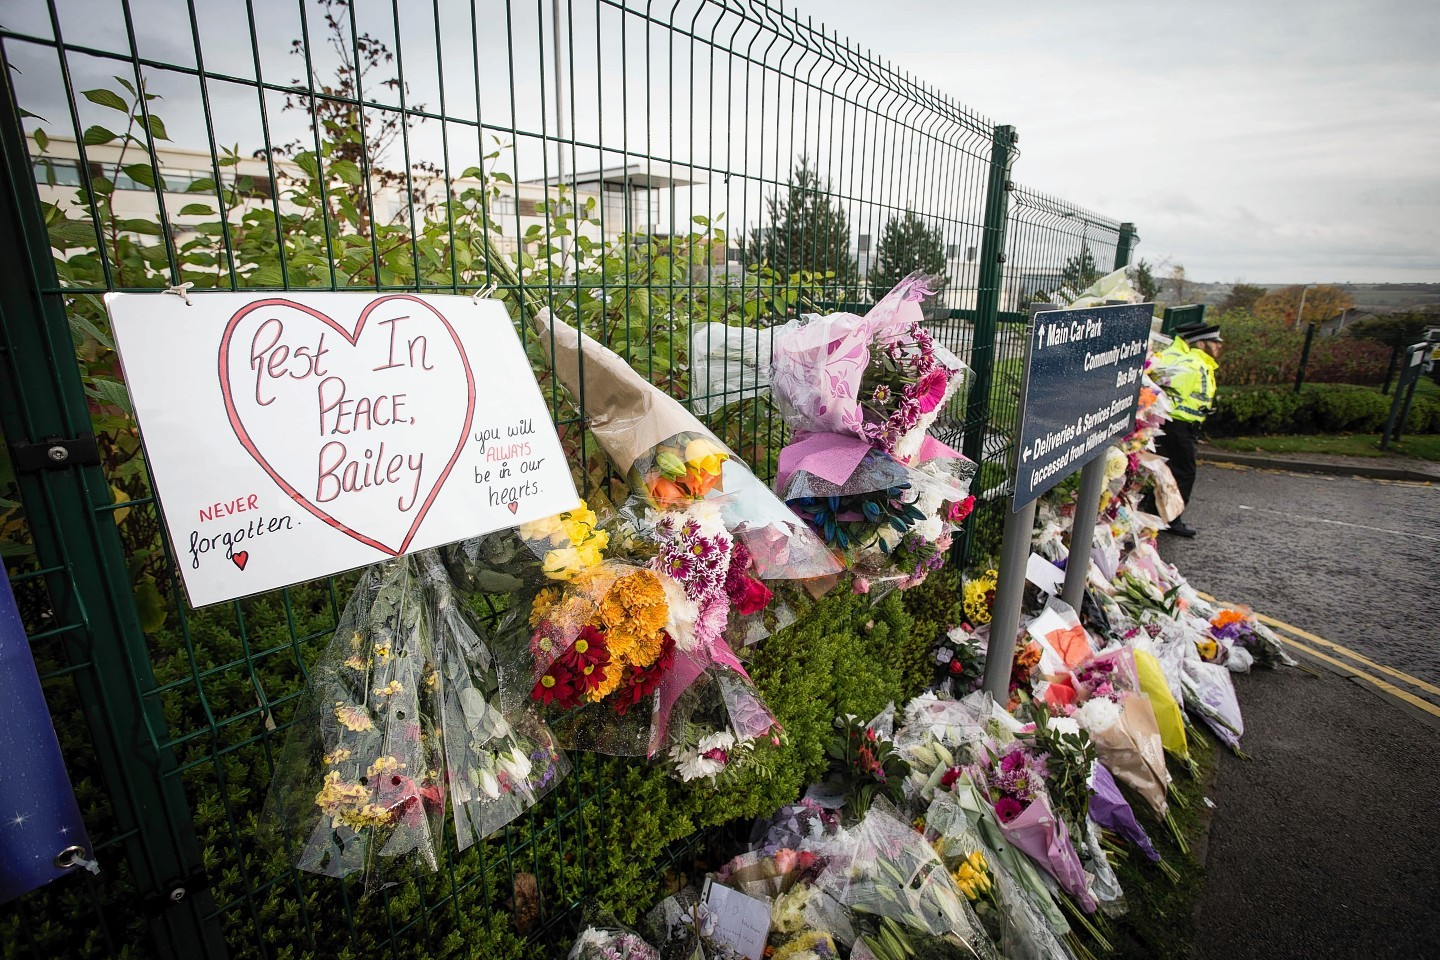 The collection of tributes to Bailey outside the school continues to grow